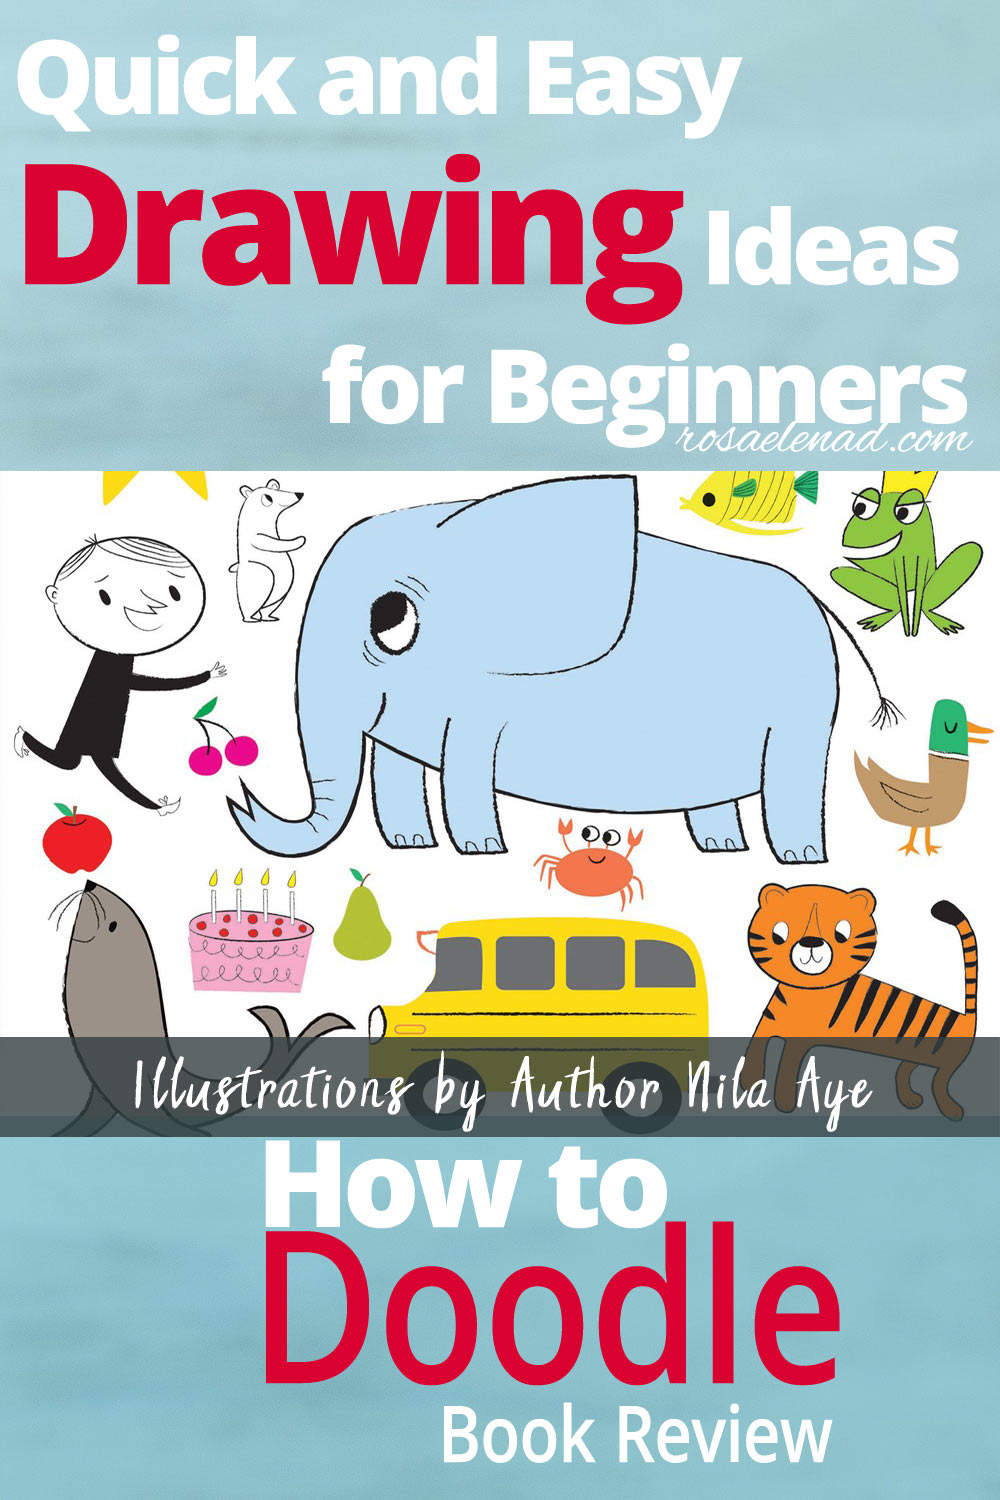 How To Doodle 250 Quick And Easy Drawing Ideas For Beginners